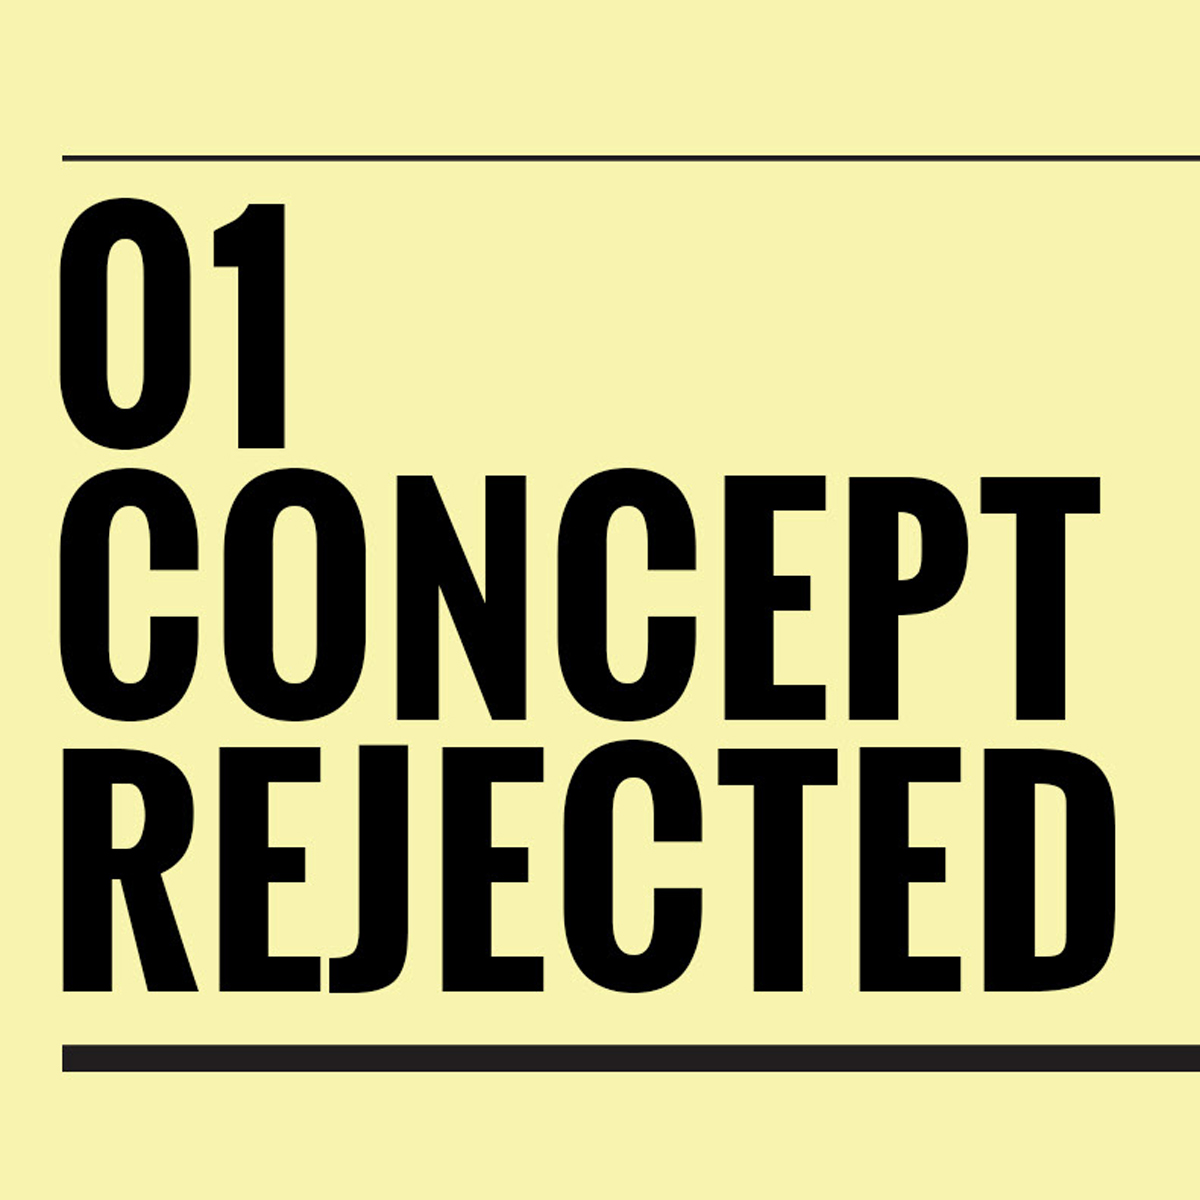 CONCEPT REJECTED 01